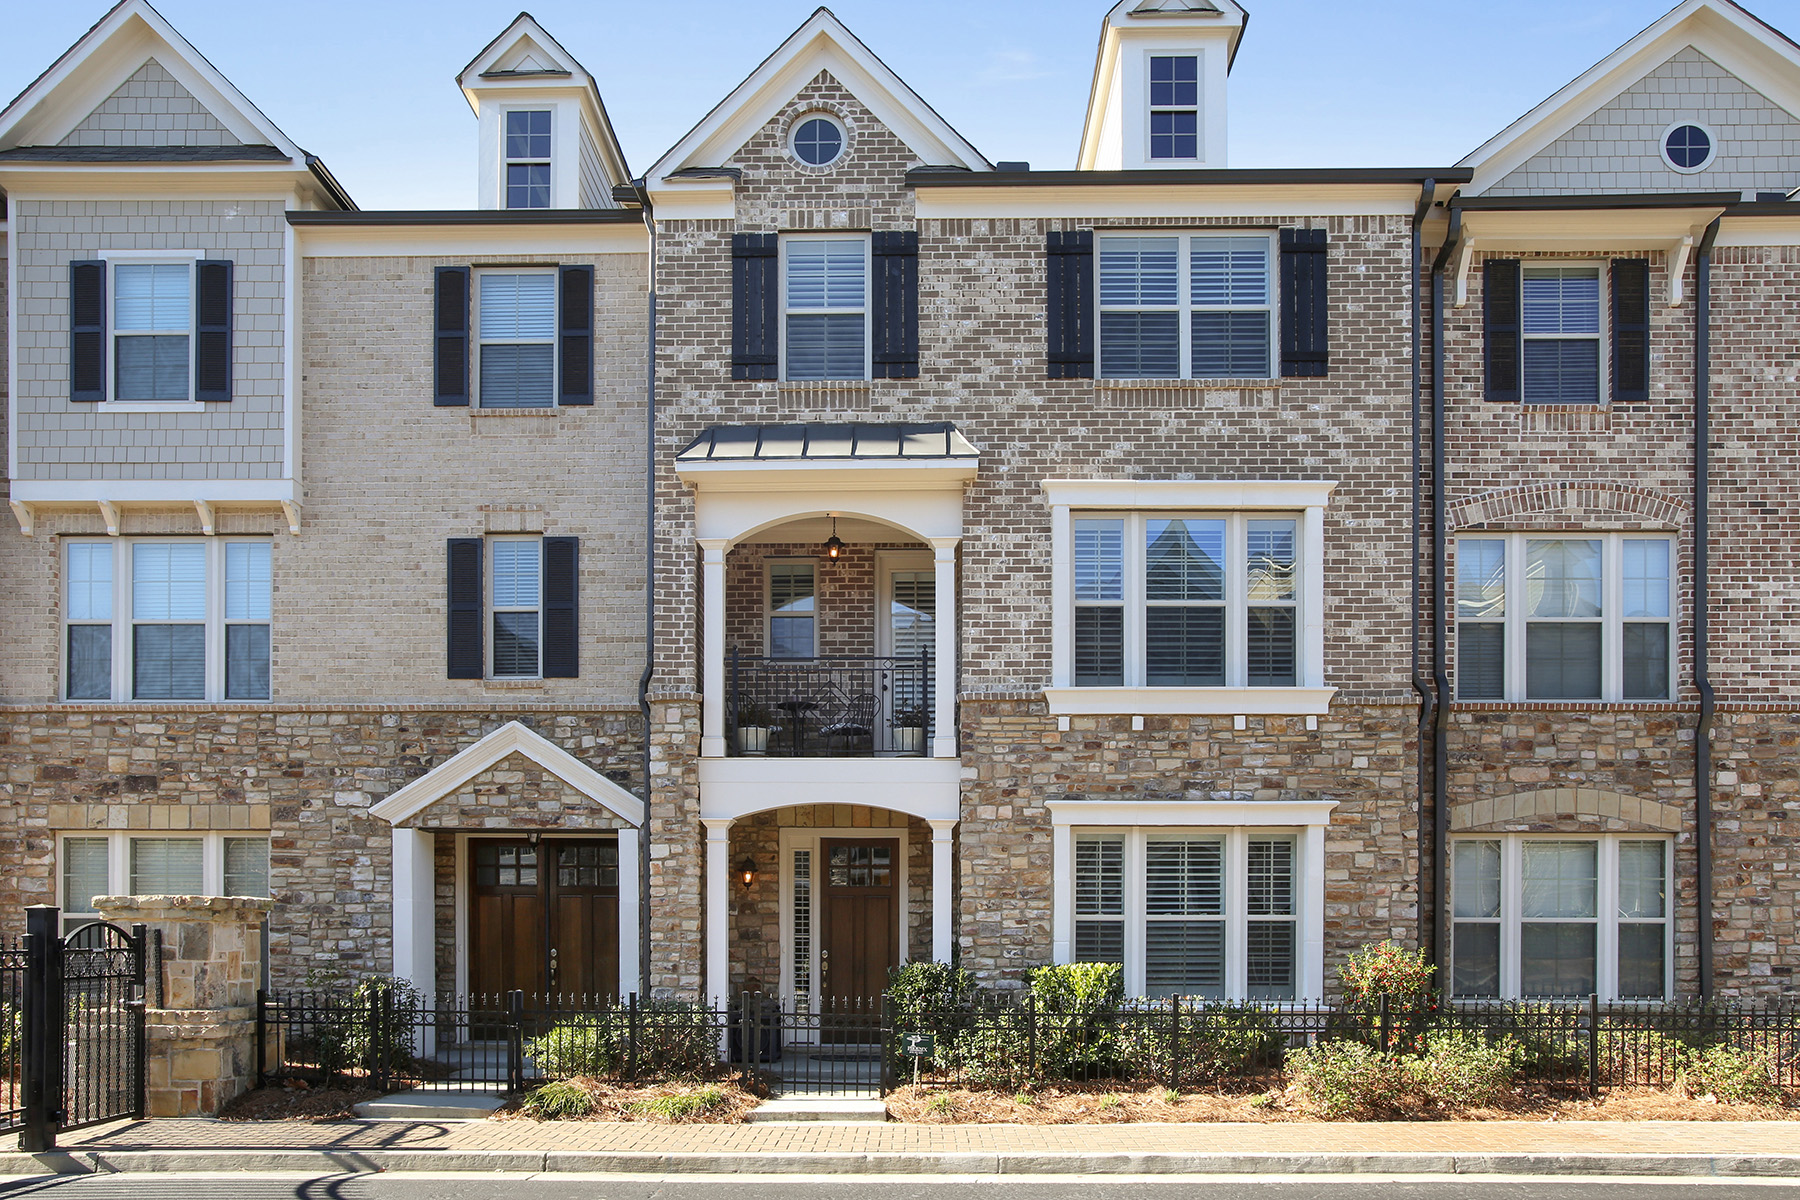 Townhouse for Rent at For Rent - Beautiful Upgraded Townhome in Towns at Druid Hills 1438 Druid Manor Boulevard NE Atlanta, Georgia 30329 United States